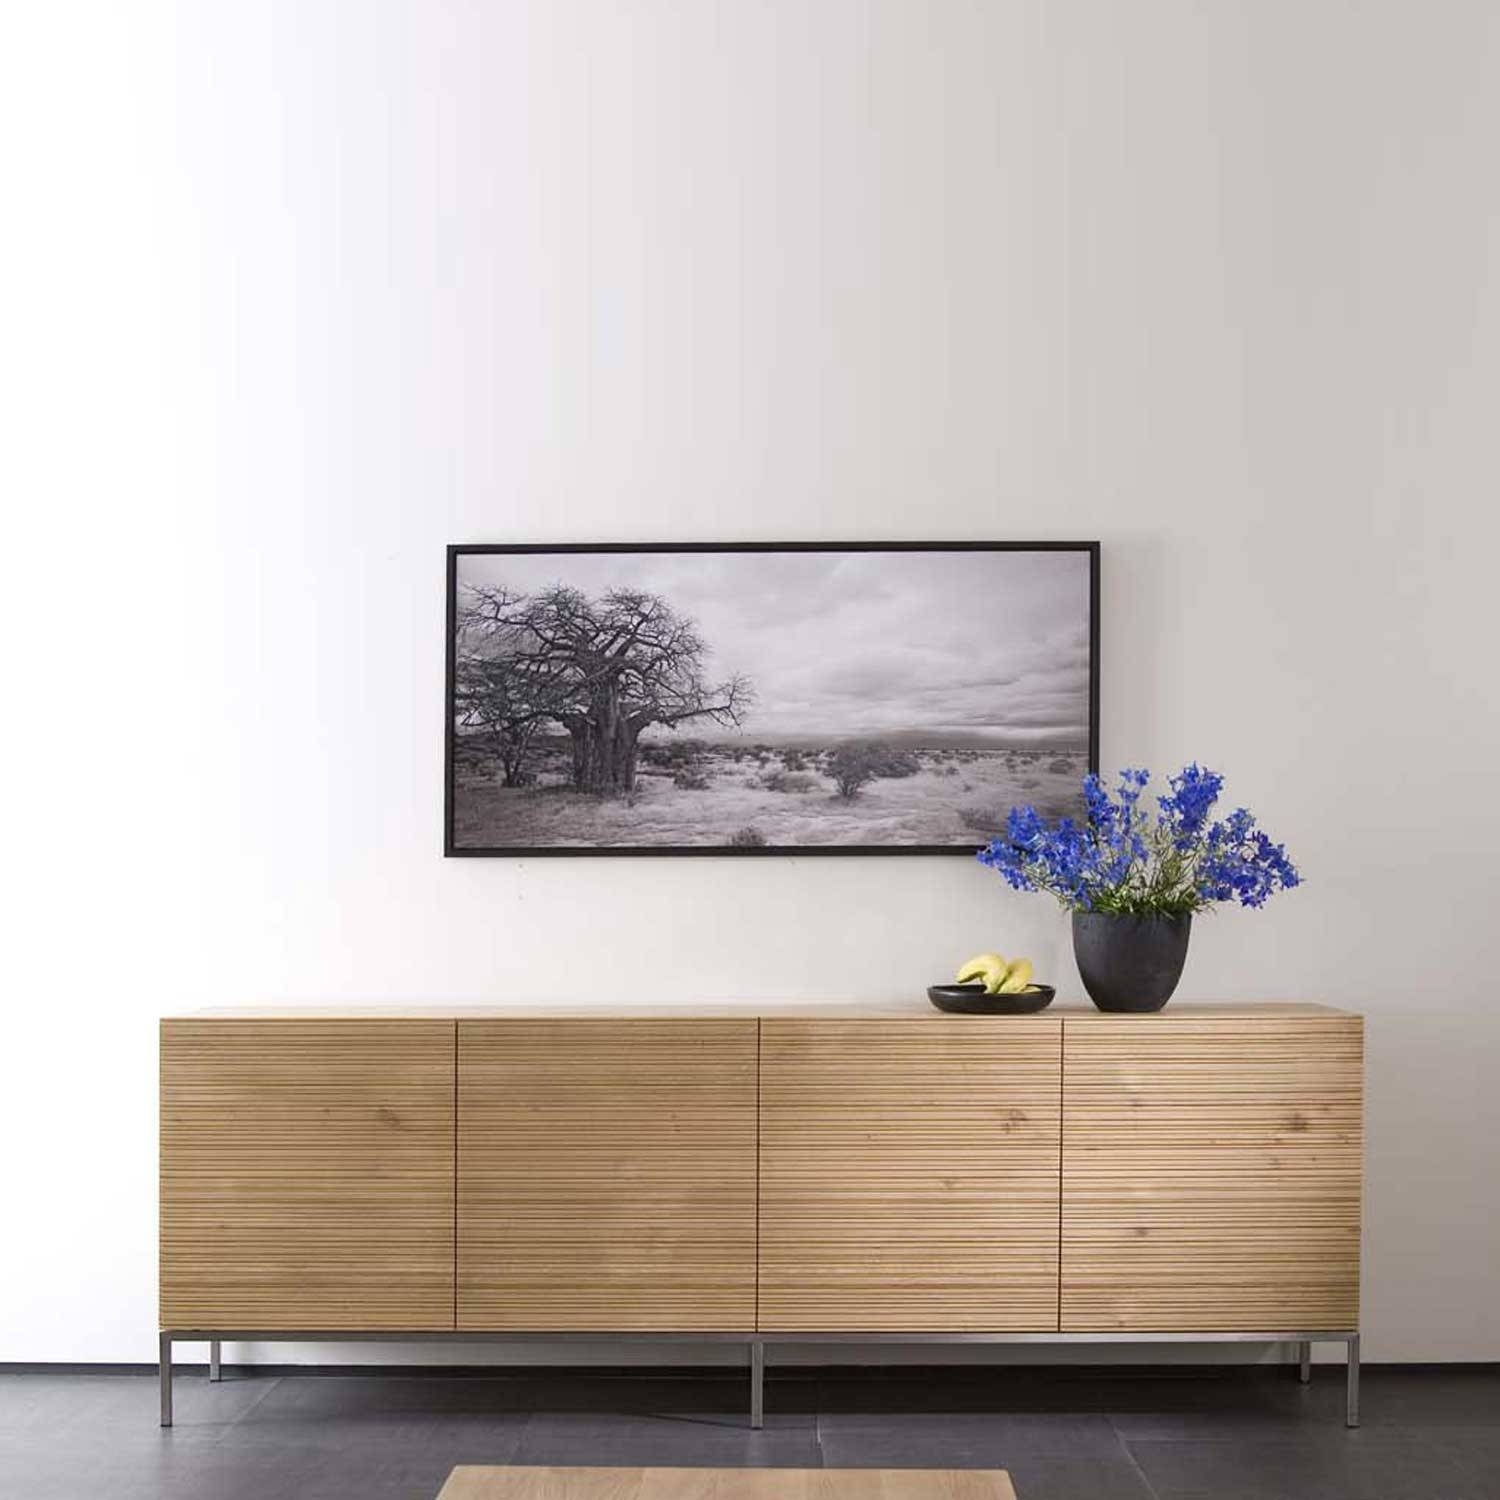 Ethnicraft Stonecut Oak Sideboards | Solid Wood Furniture regarding Oak Sideboards (Image 11 of 30)